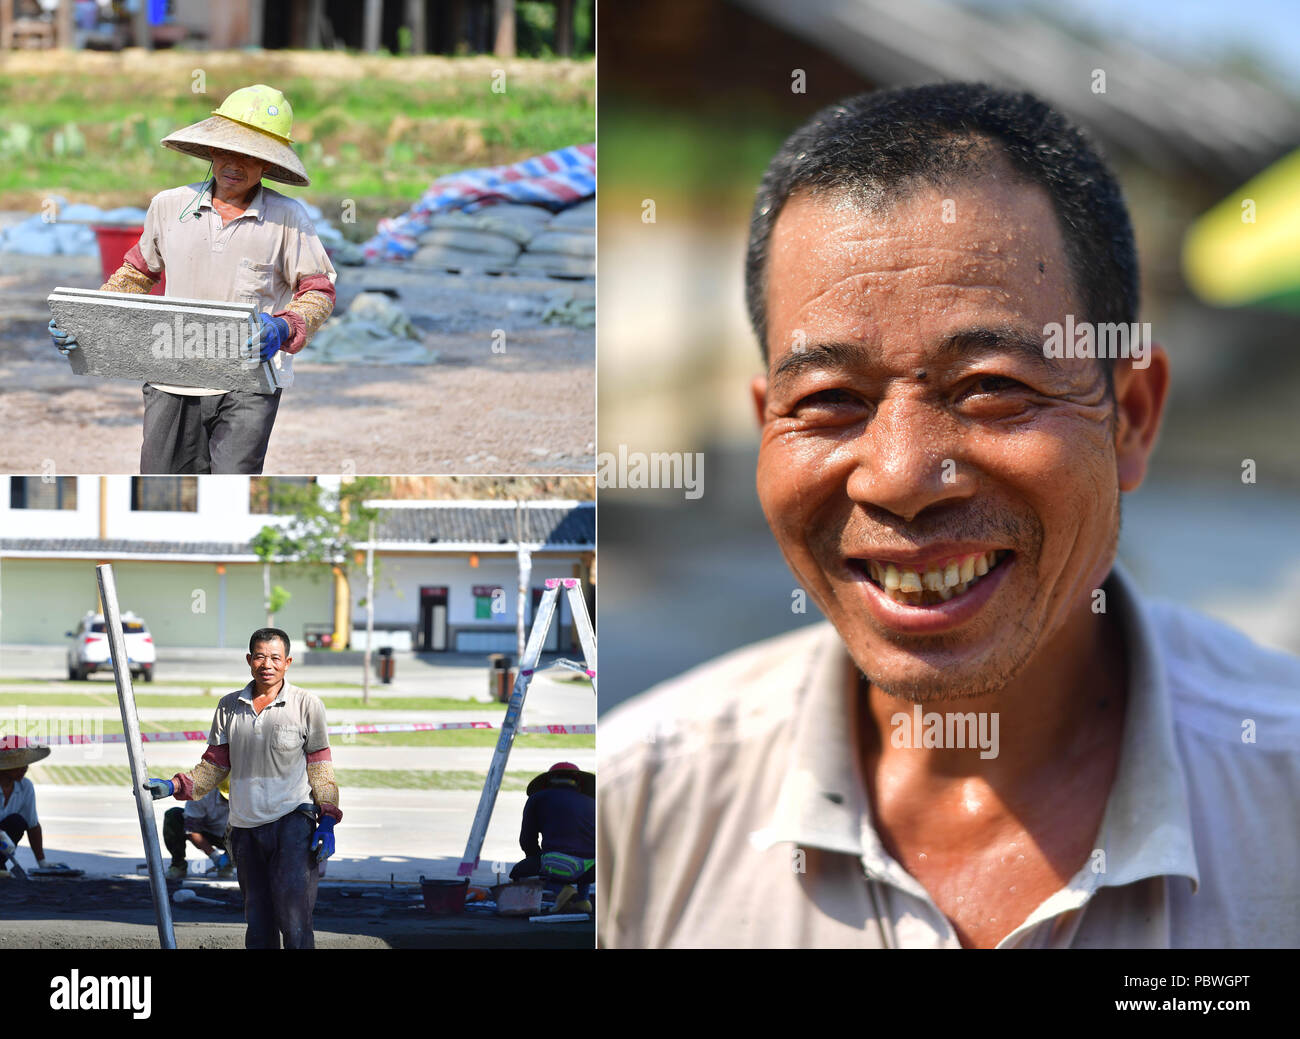 (180730) -- RONGSHUI, July 30, 2018 (Xinhua) -- The combined photo taken on July 20, 2018 shows He Renzhang, an impoverished villager, working at the construction site of the Shuanglonggou Forest Tourist Resort in Rongshui Miao Autonomous County, south China's Guangxi Zhuang Autonomous Region. Due to harsh environmental conditions, Rongshui has long been a less developed area in China. Up to now, there are still 76,800 impoverished people living in the county. In recent years, the local government carries out effective methods for poverty alleviation, helping local people to build roads, repai - Stock Image